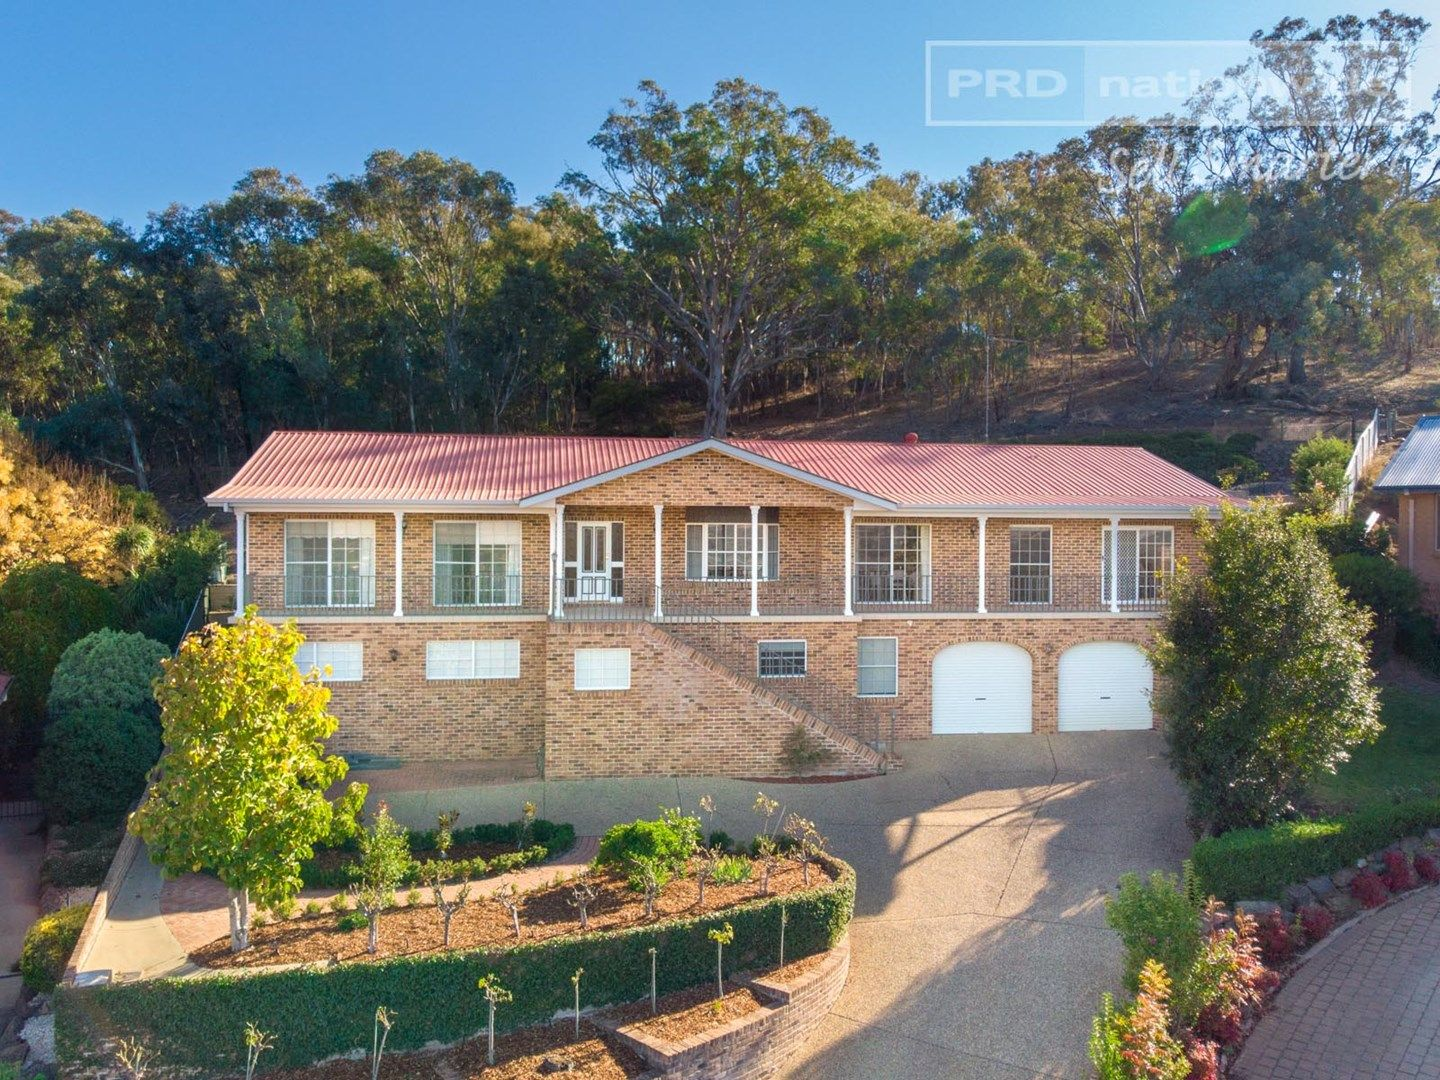 2 Loru Close, Kooringal NSW 2650, Image 0